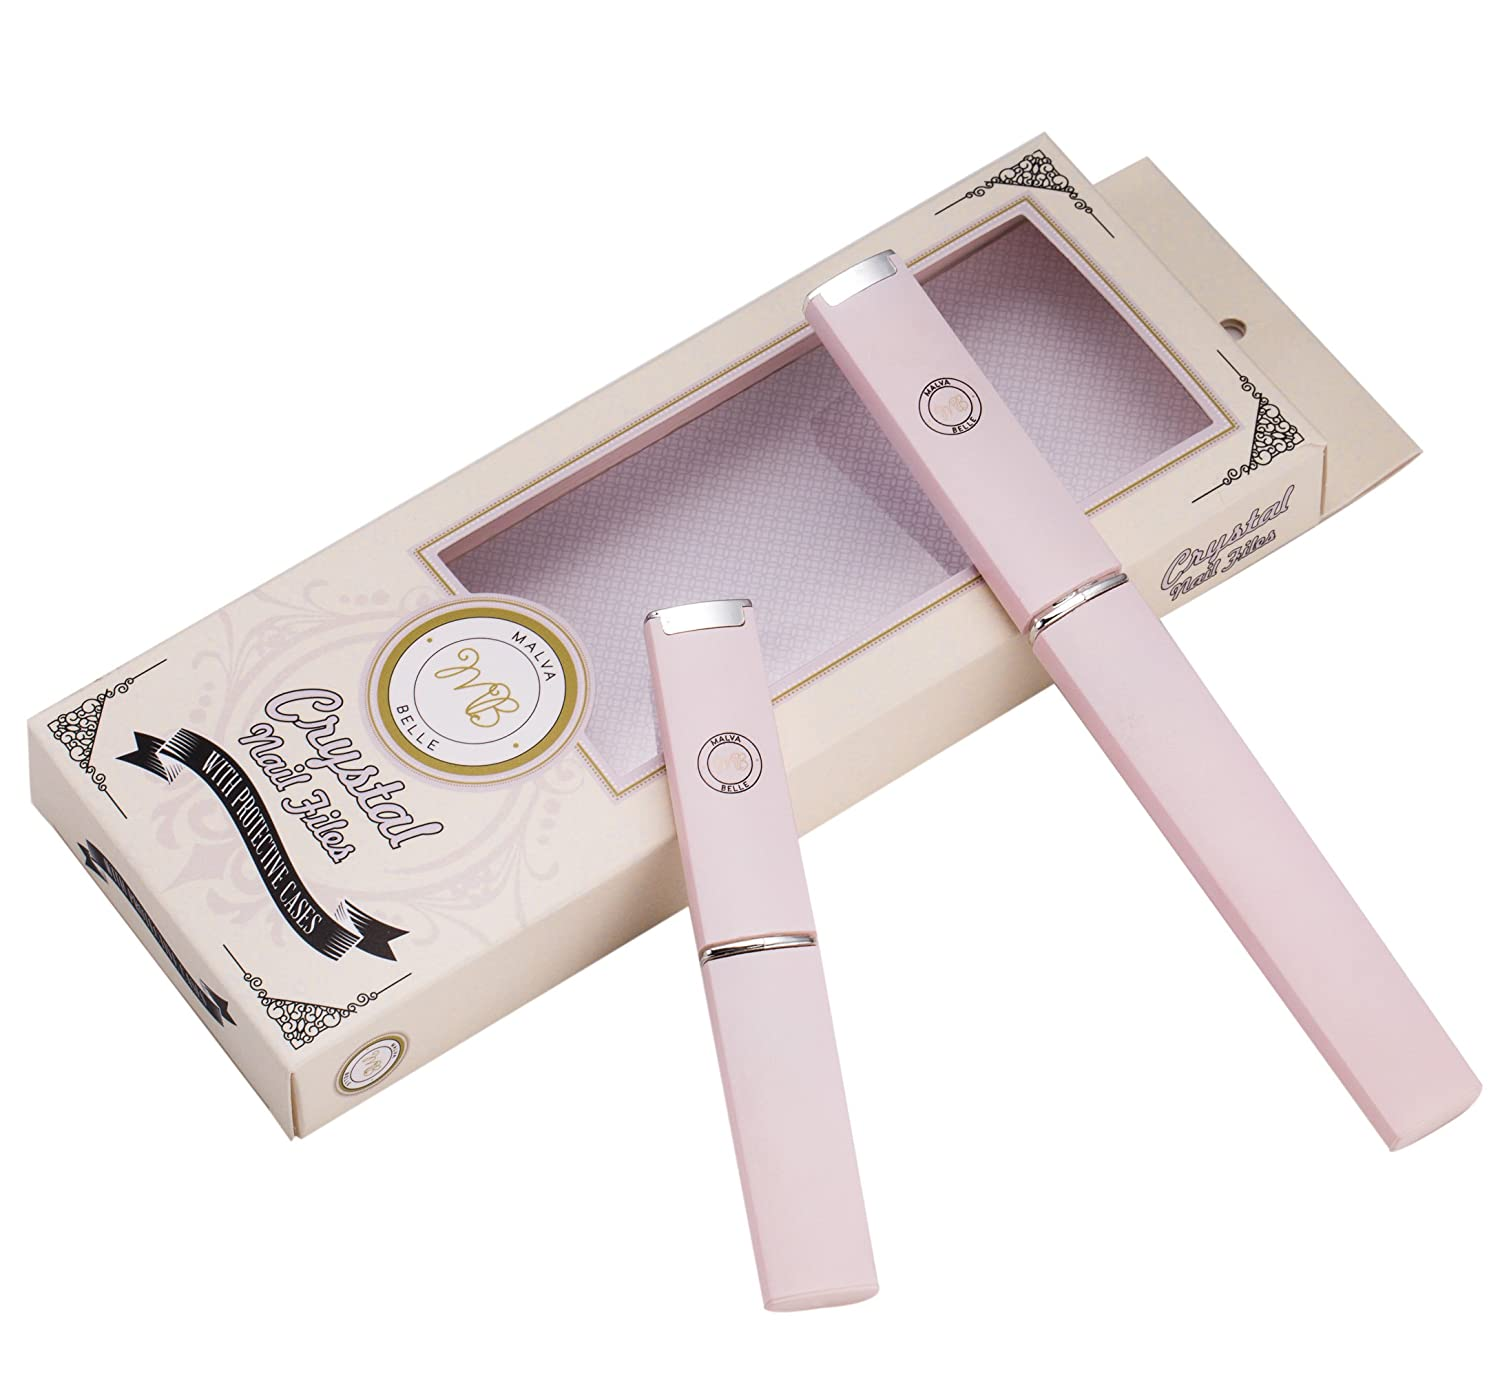 Best Crystal Nail File Set of 2 - Perfect for Women, Kids & Baby - Built to Last - Professional Manicure & Pedicure Kit - For Natural, Gel, Acrylic, Fake and Clear Nails - Extra slim design Malva Belle